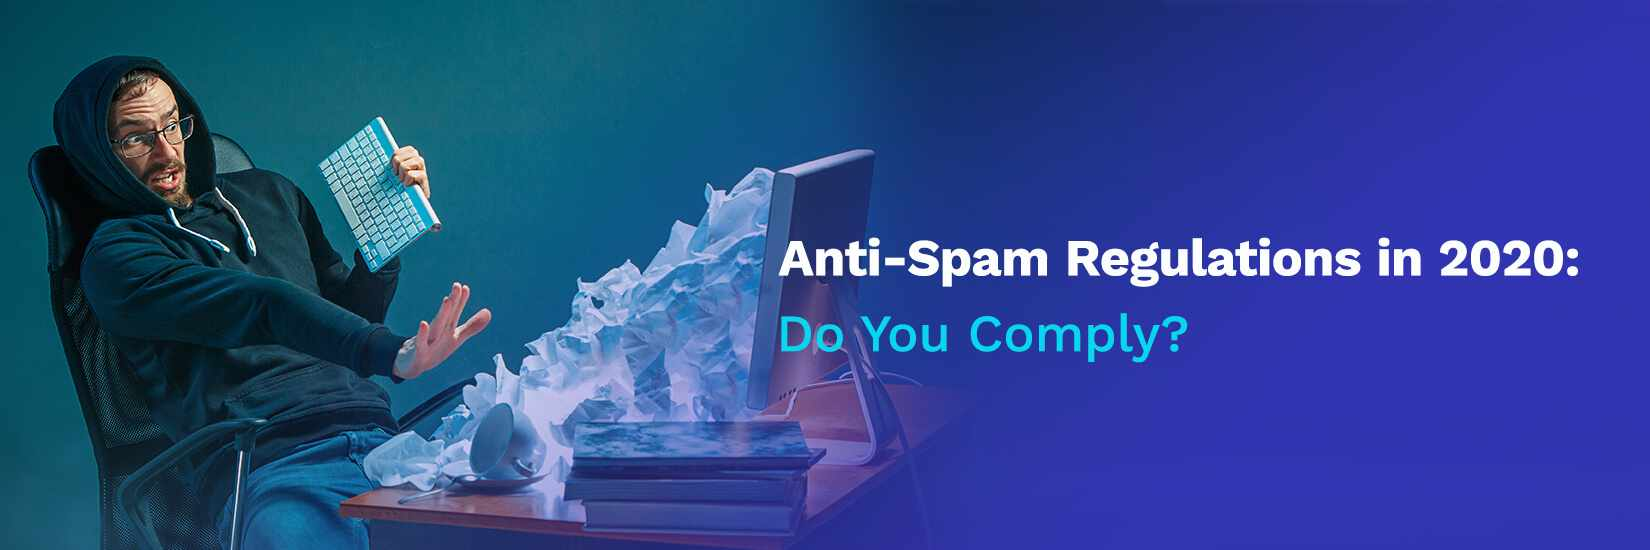 Anti-Spam Regulations in 2020: Do You Comply?